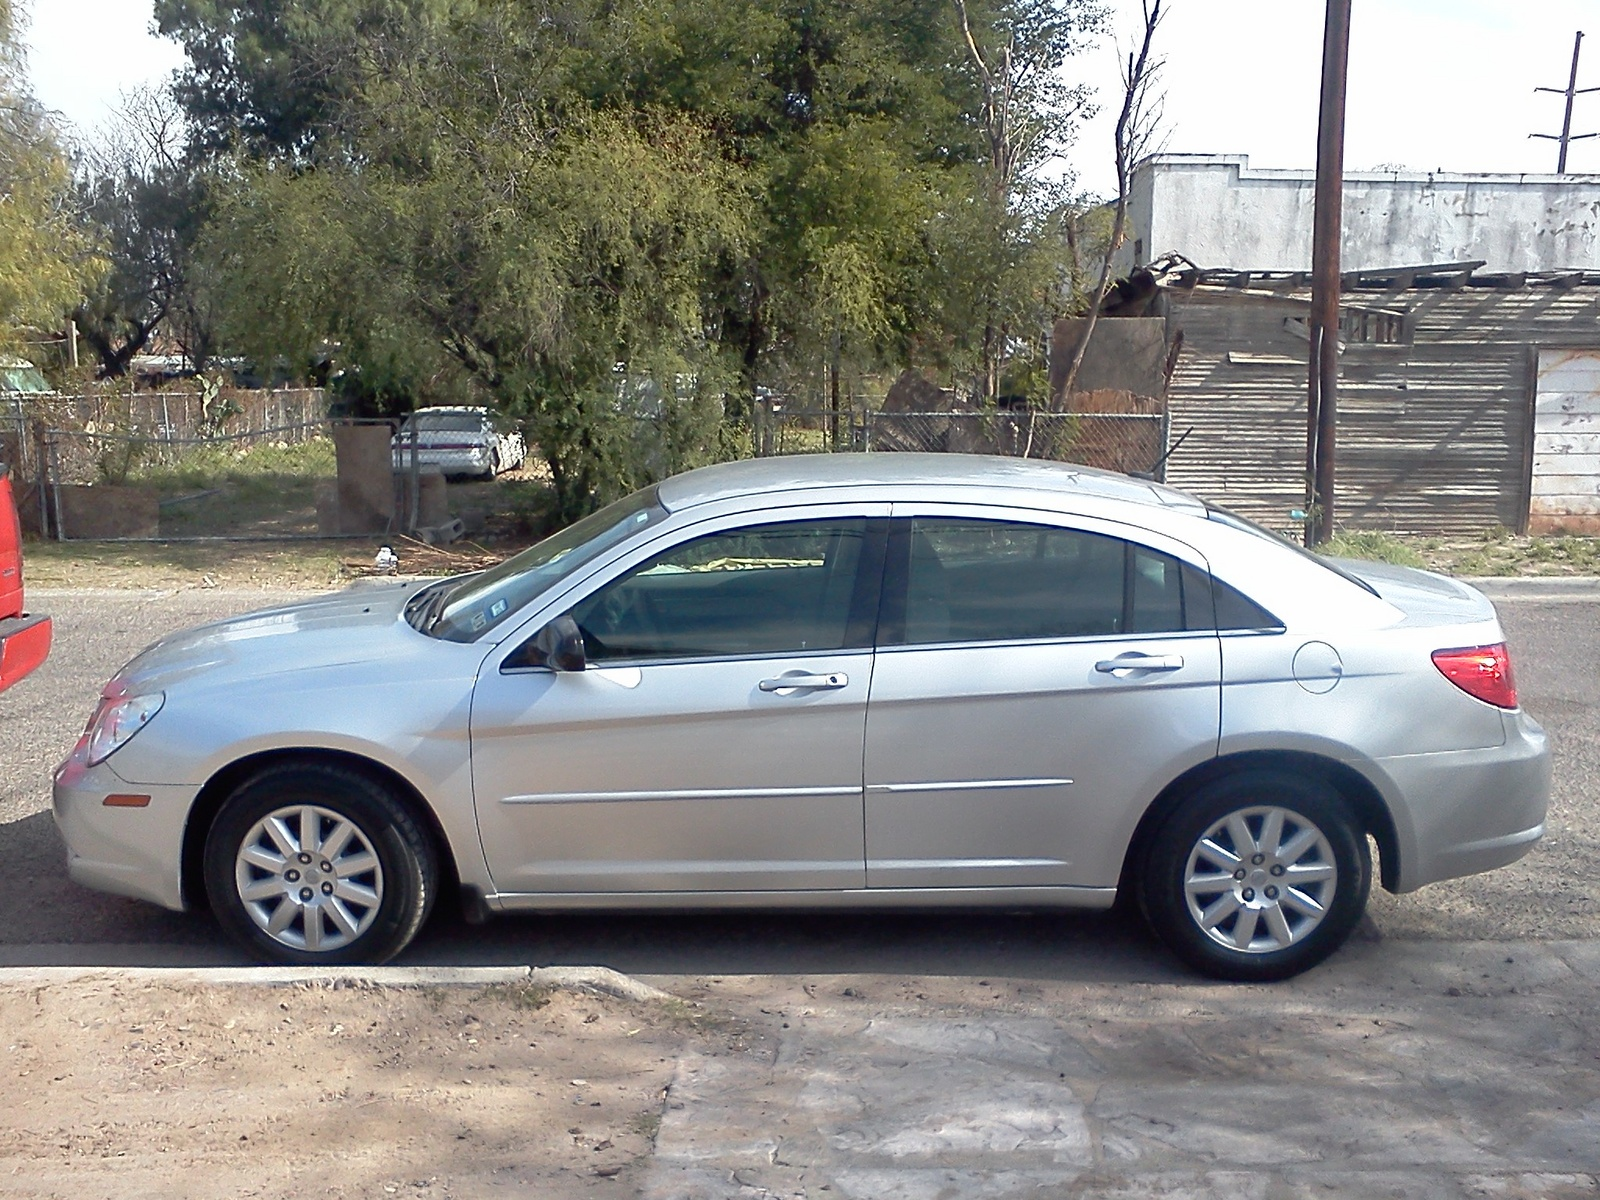 2008 chrysler sebring exterior pictures cargurus. Cars Review. Best American Auto & Cars Review